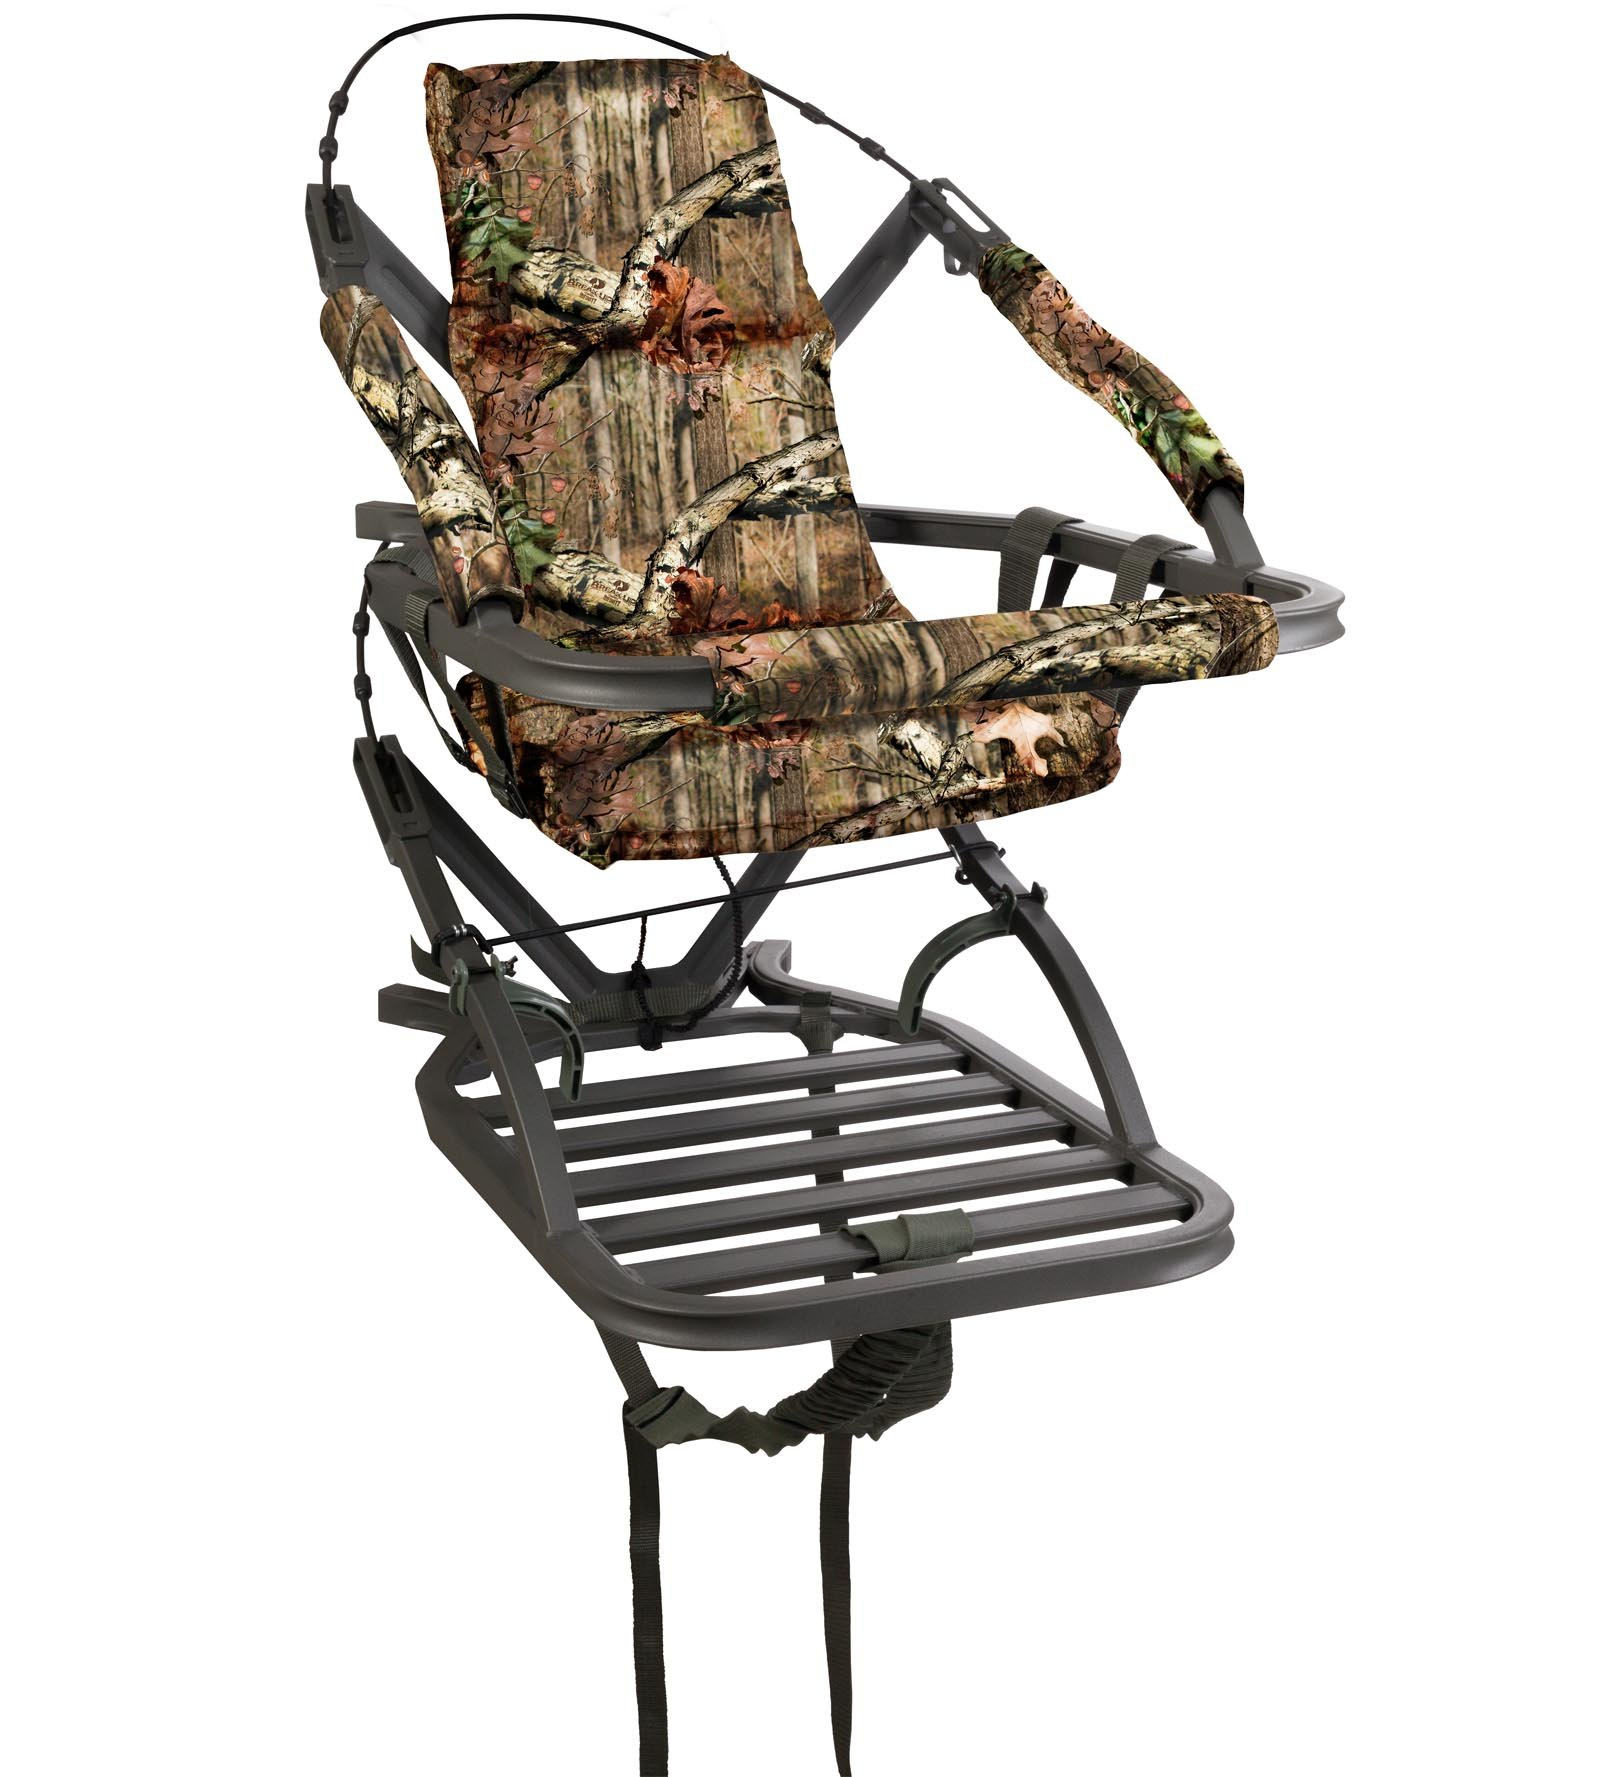 Summit Goliath SD Treestand by Summit Treestands (Image #1)